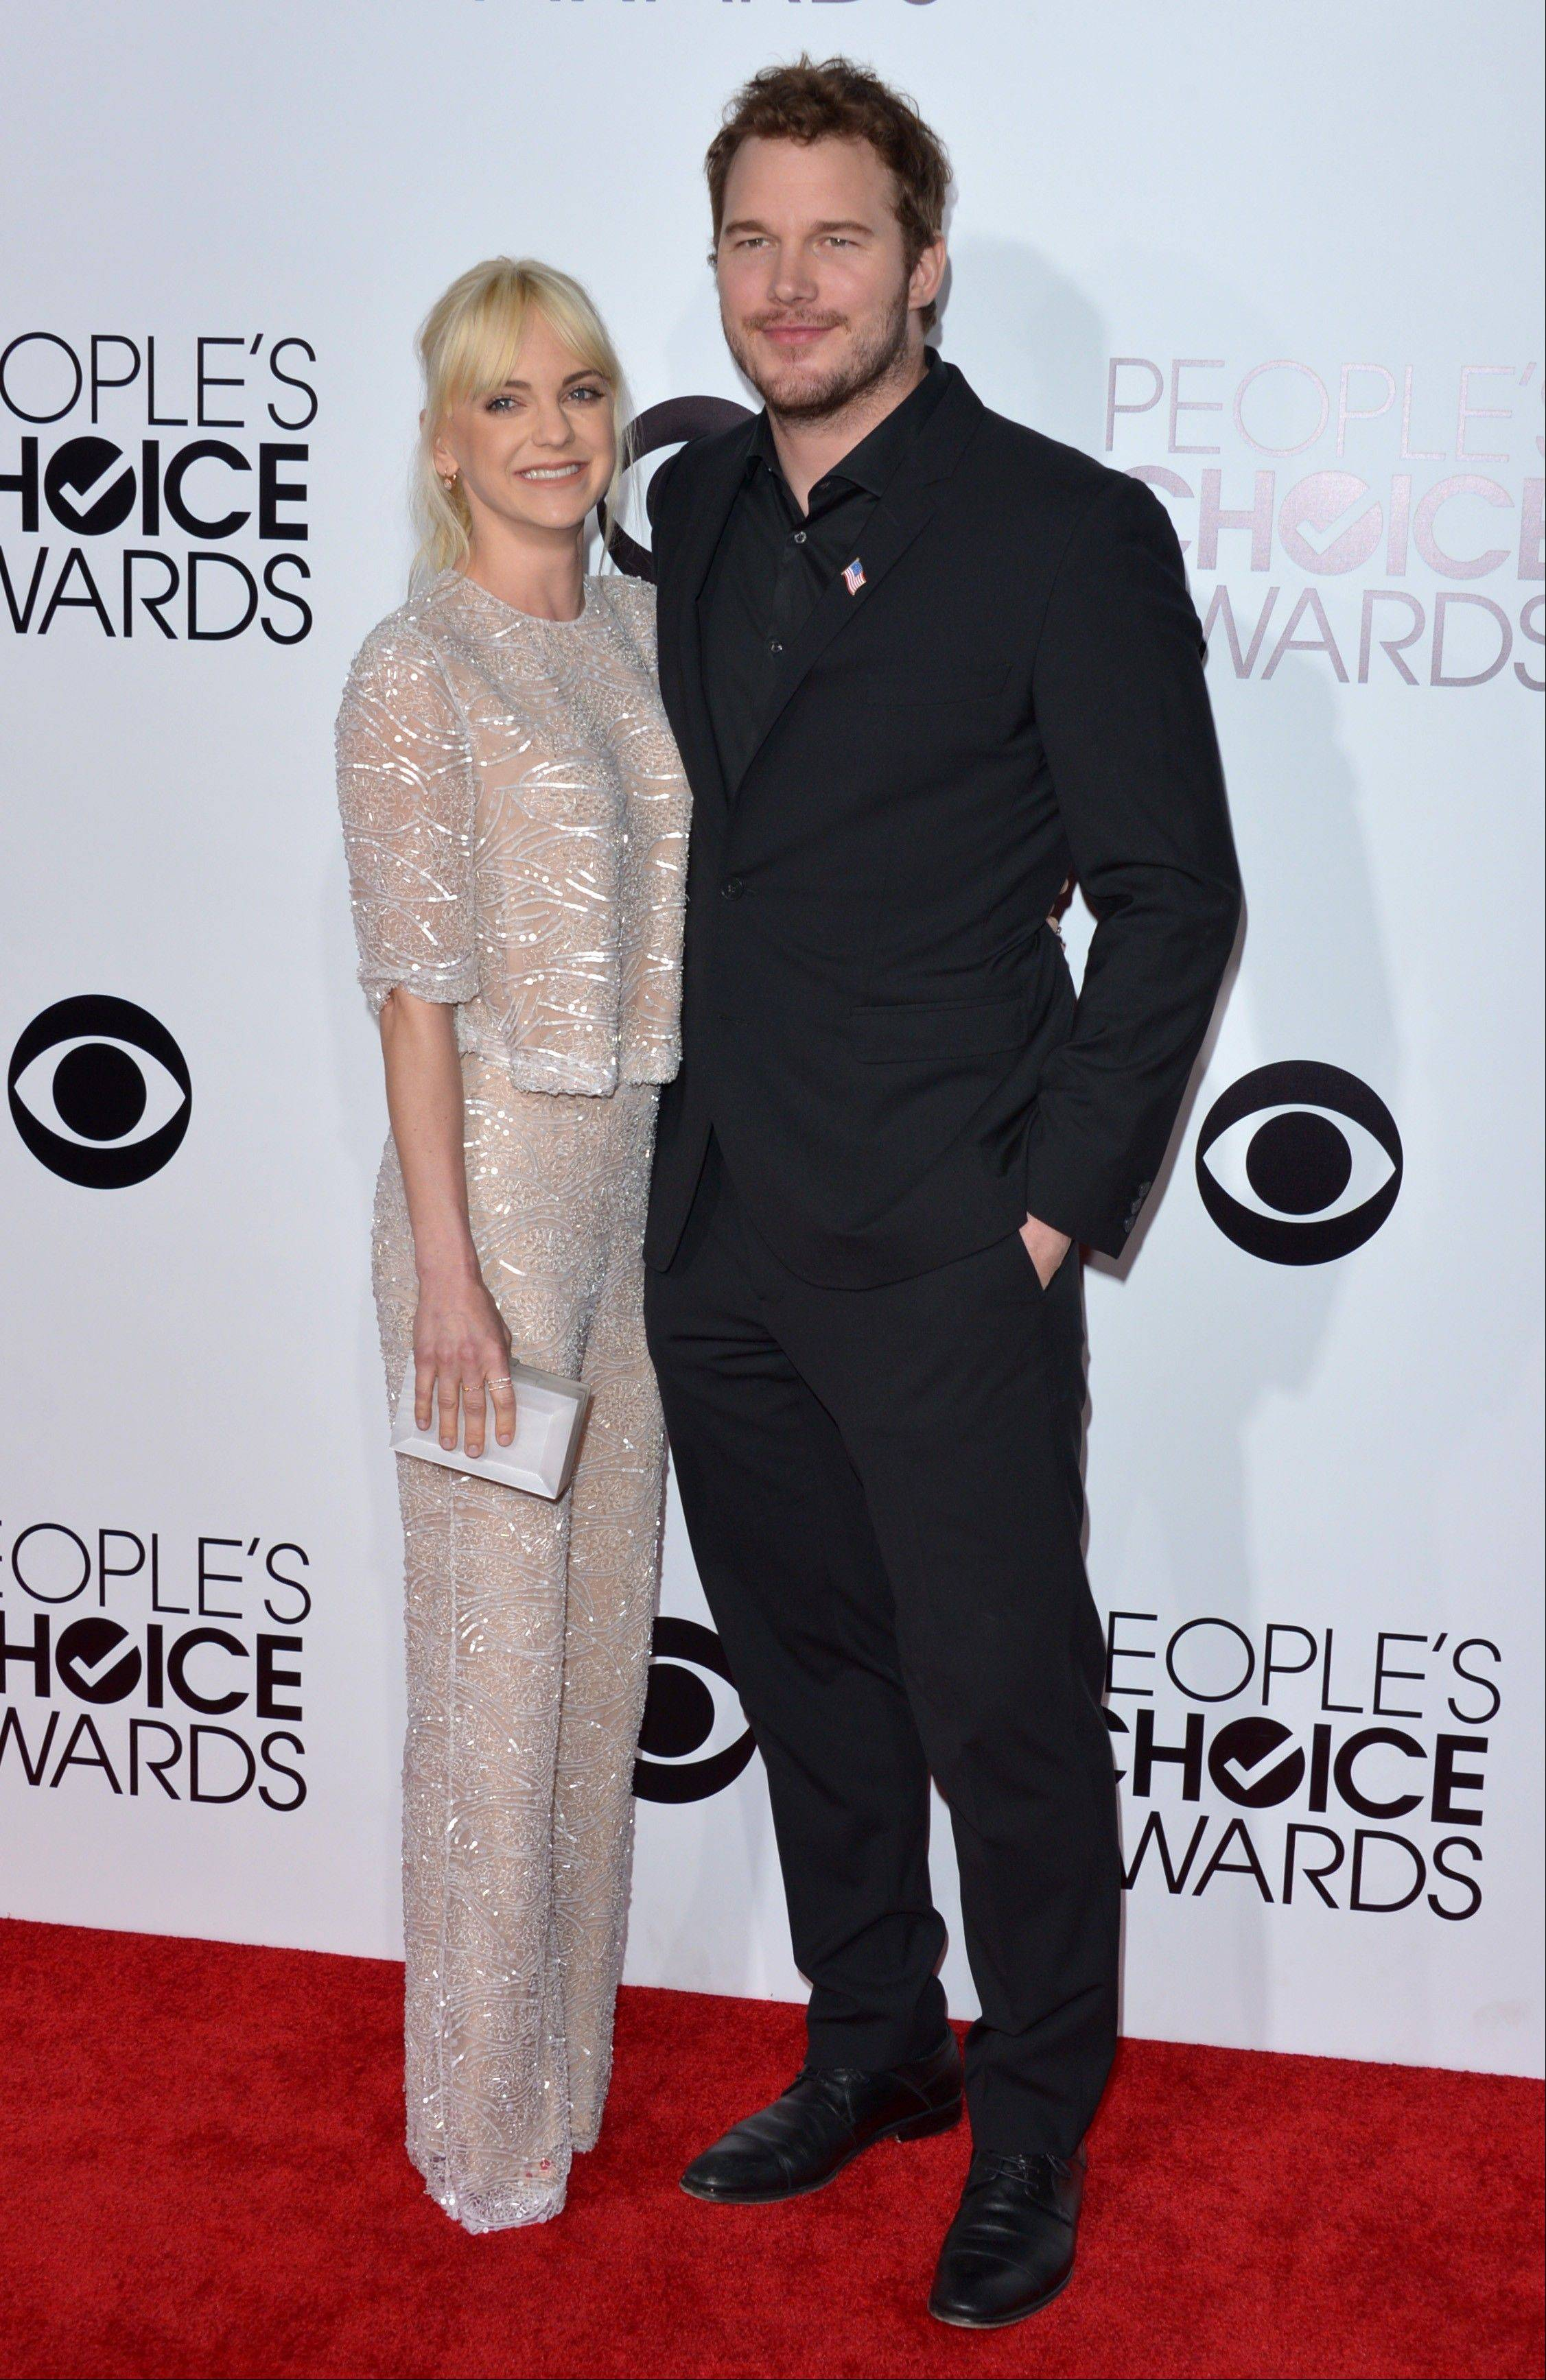 Associated PressAnna Faris, left, and Chris Pratt arrive at the 40th annual People's Choice Awards Wednesday in Los Angeles.